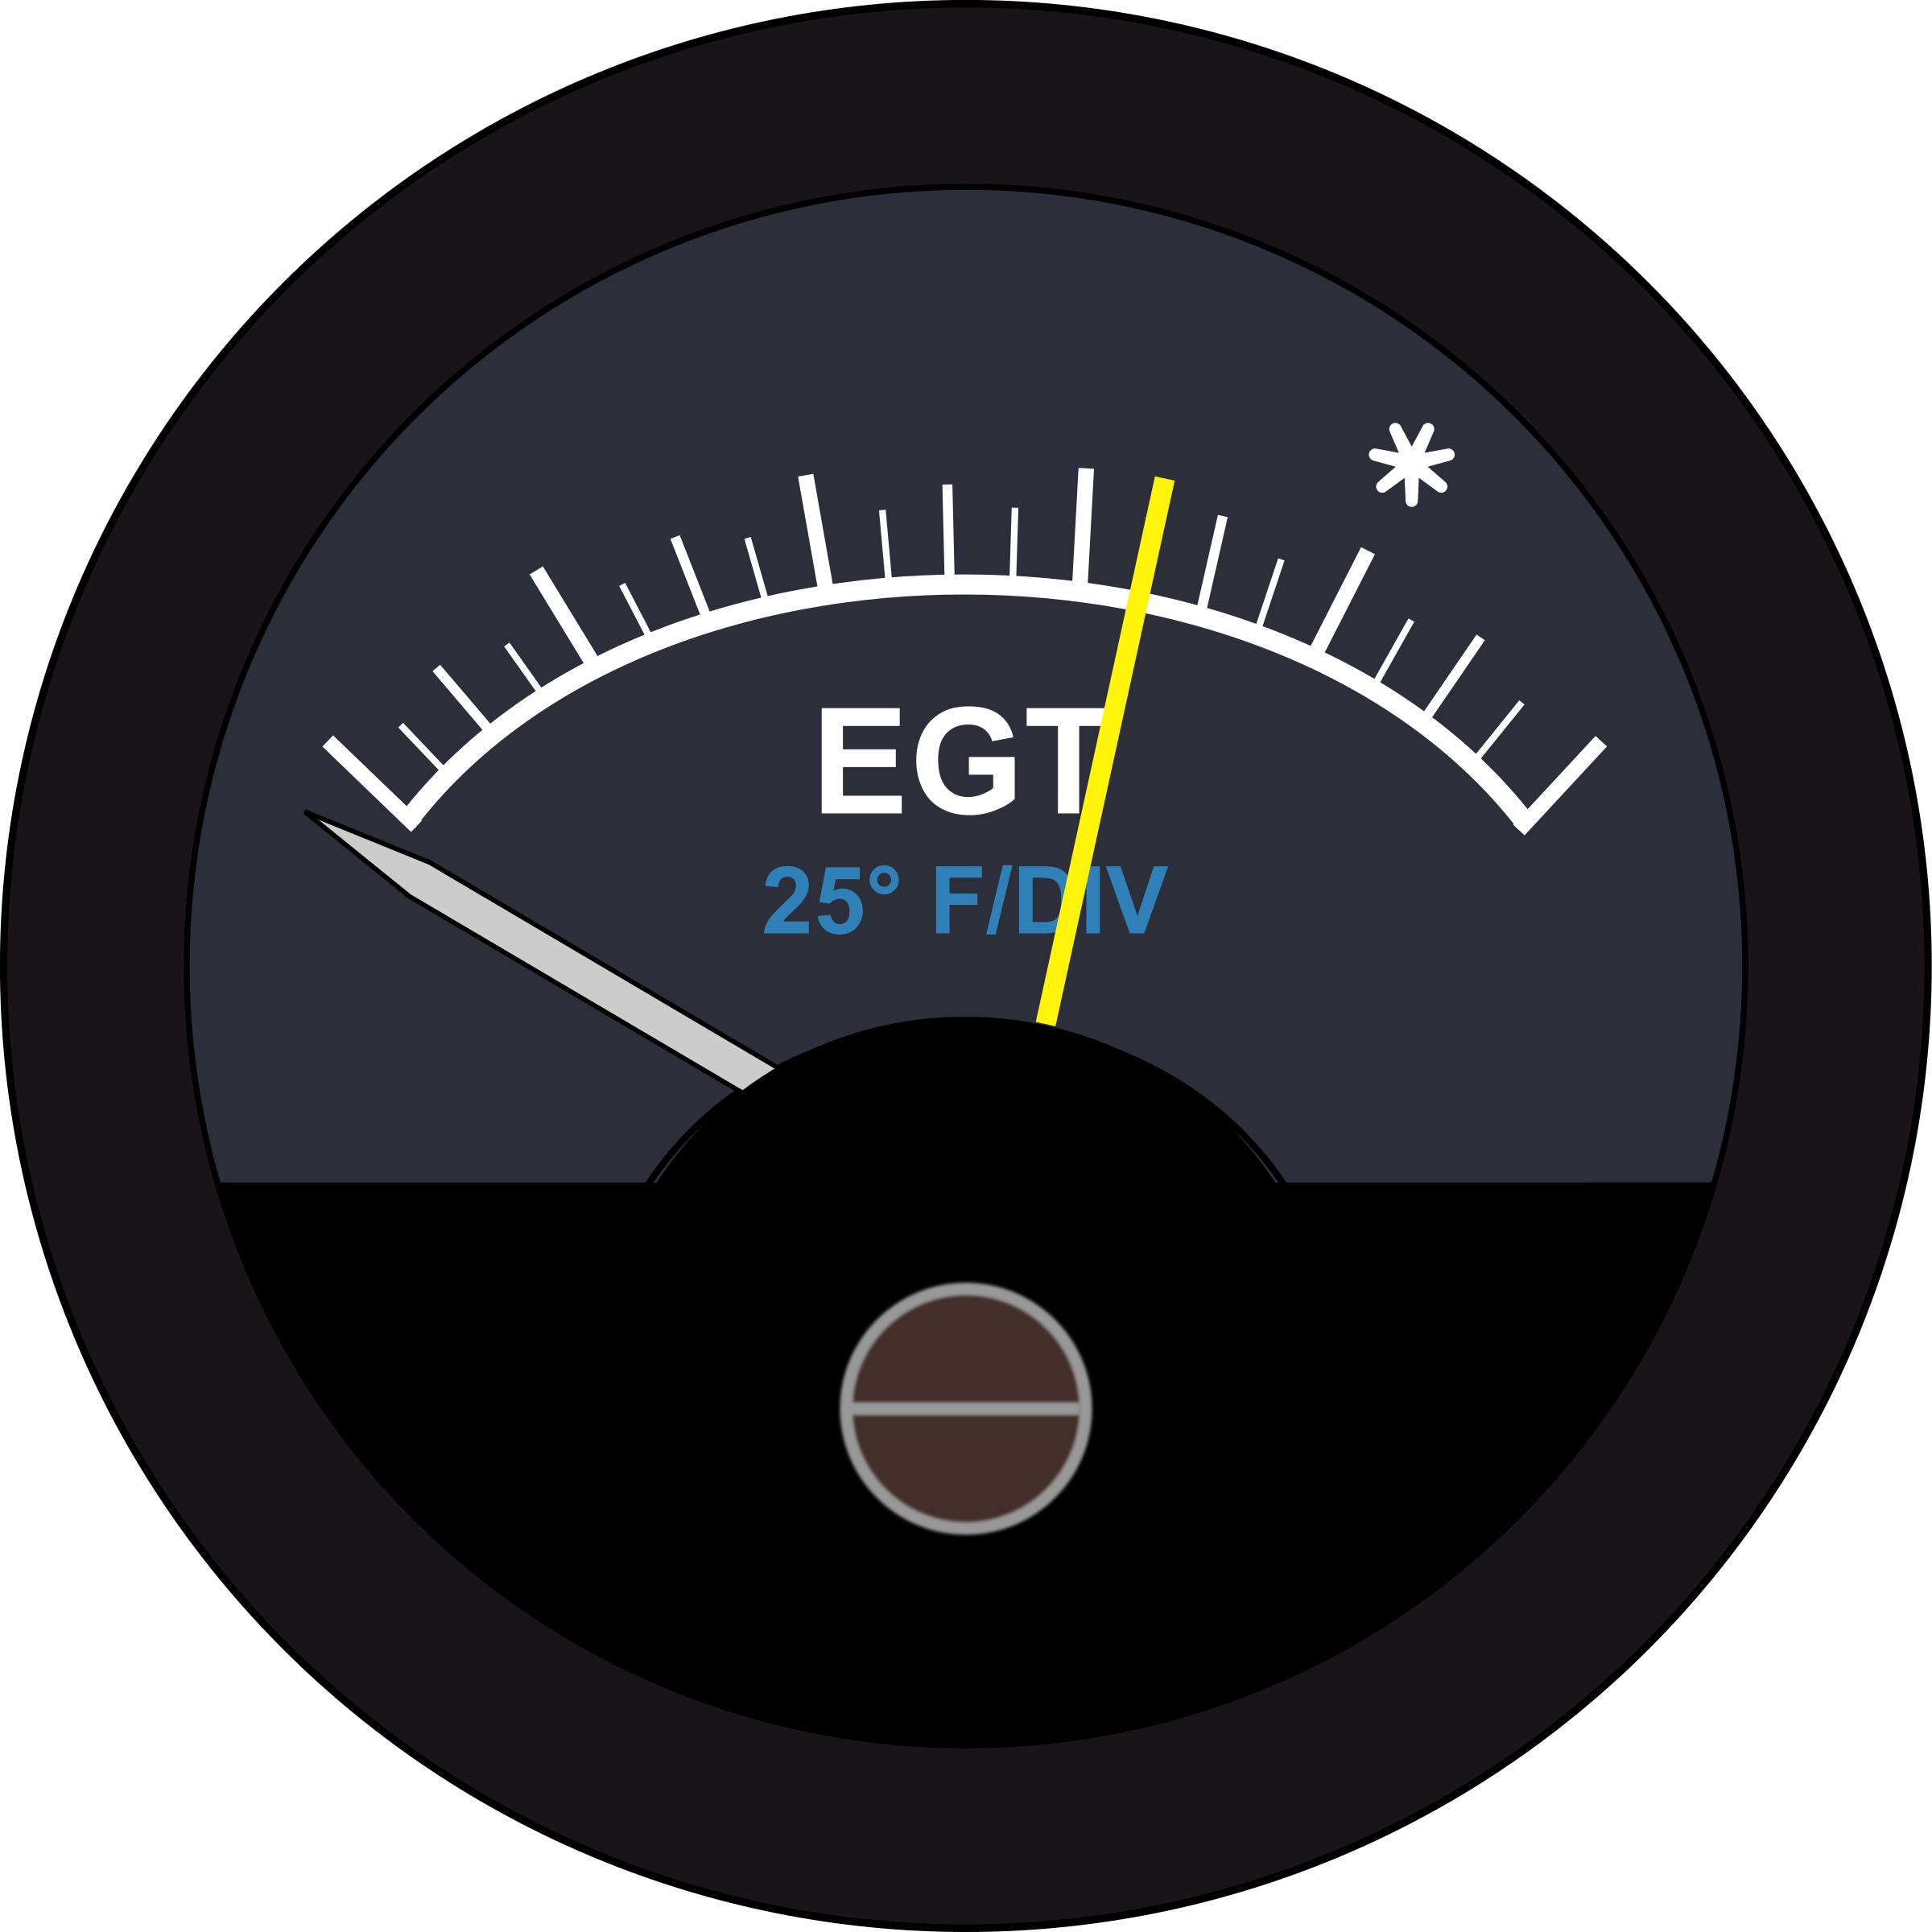 Aircraft EGT Guage by Startright